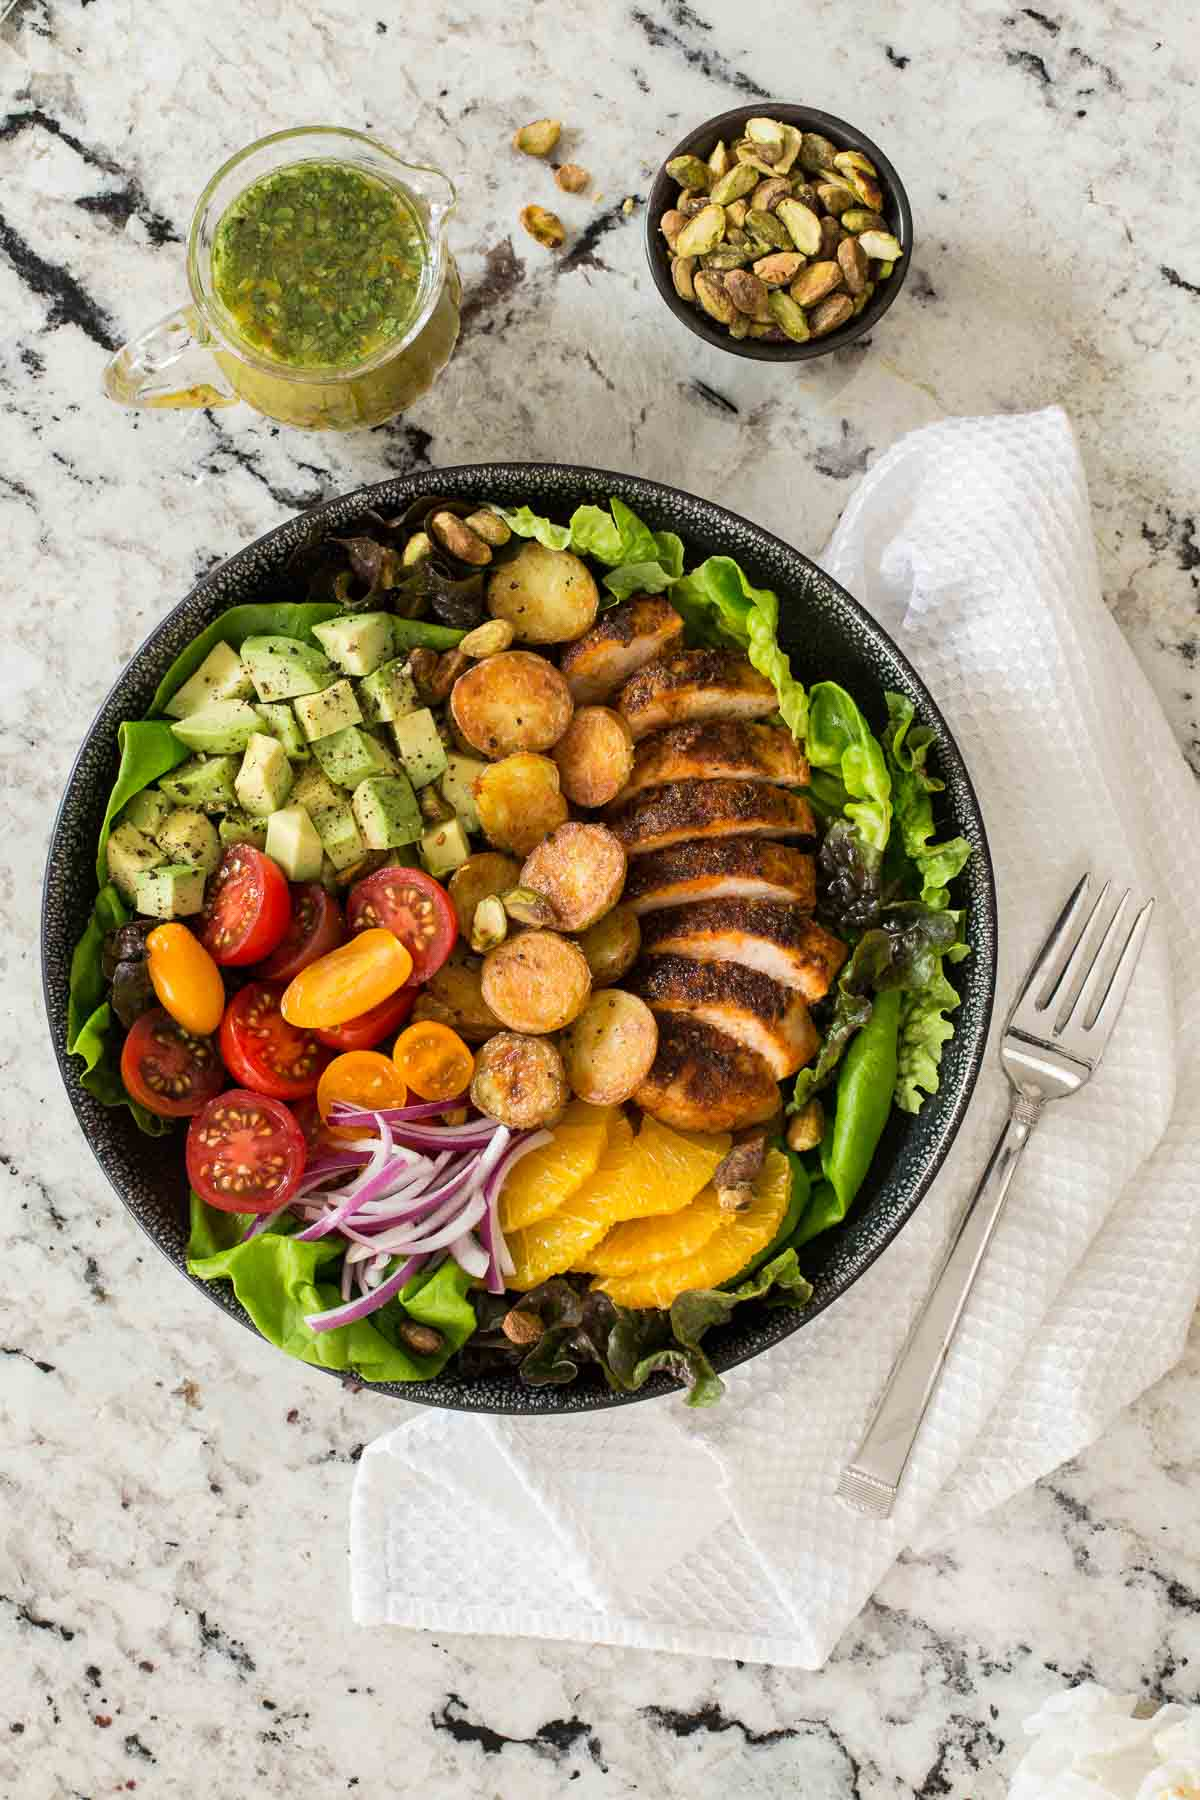 Overhead photo of a black plate filled with Warm Chicken and Roasted Potato Salad on a granite countertop.